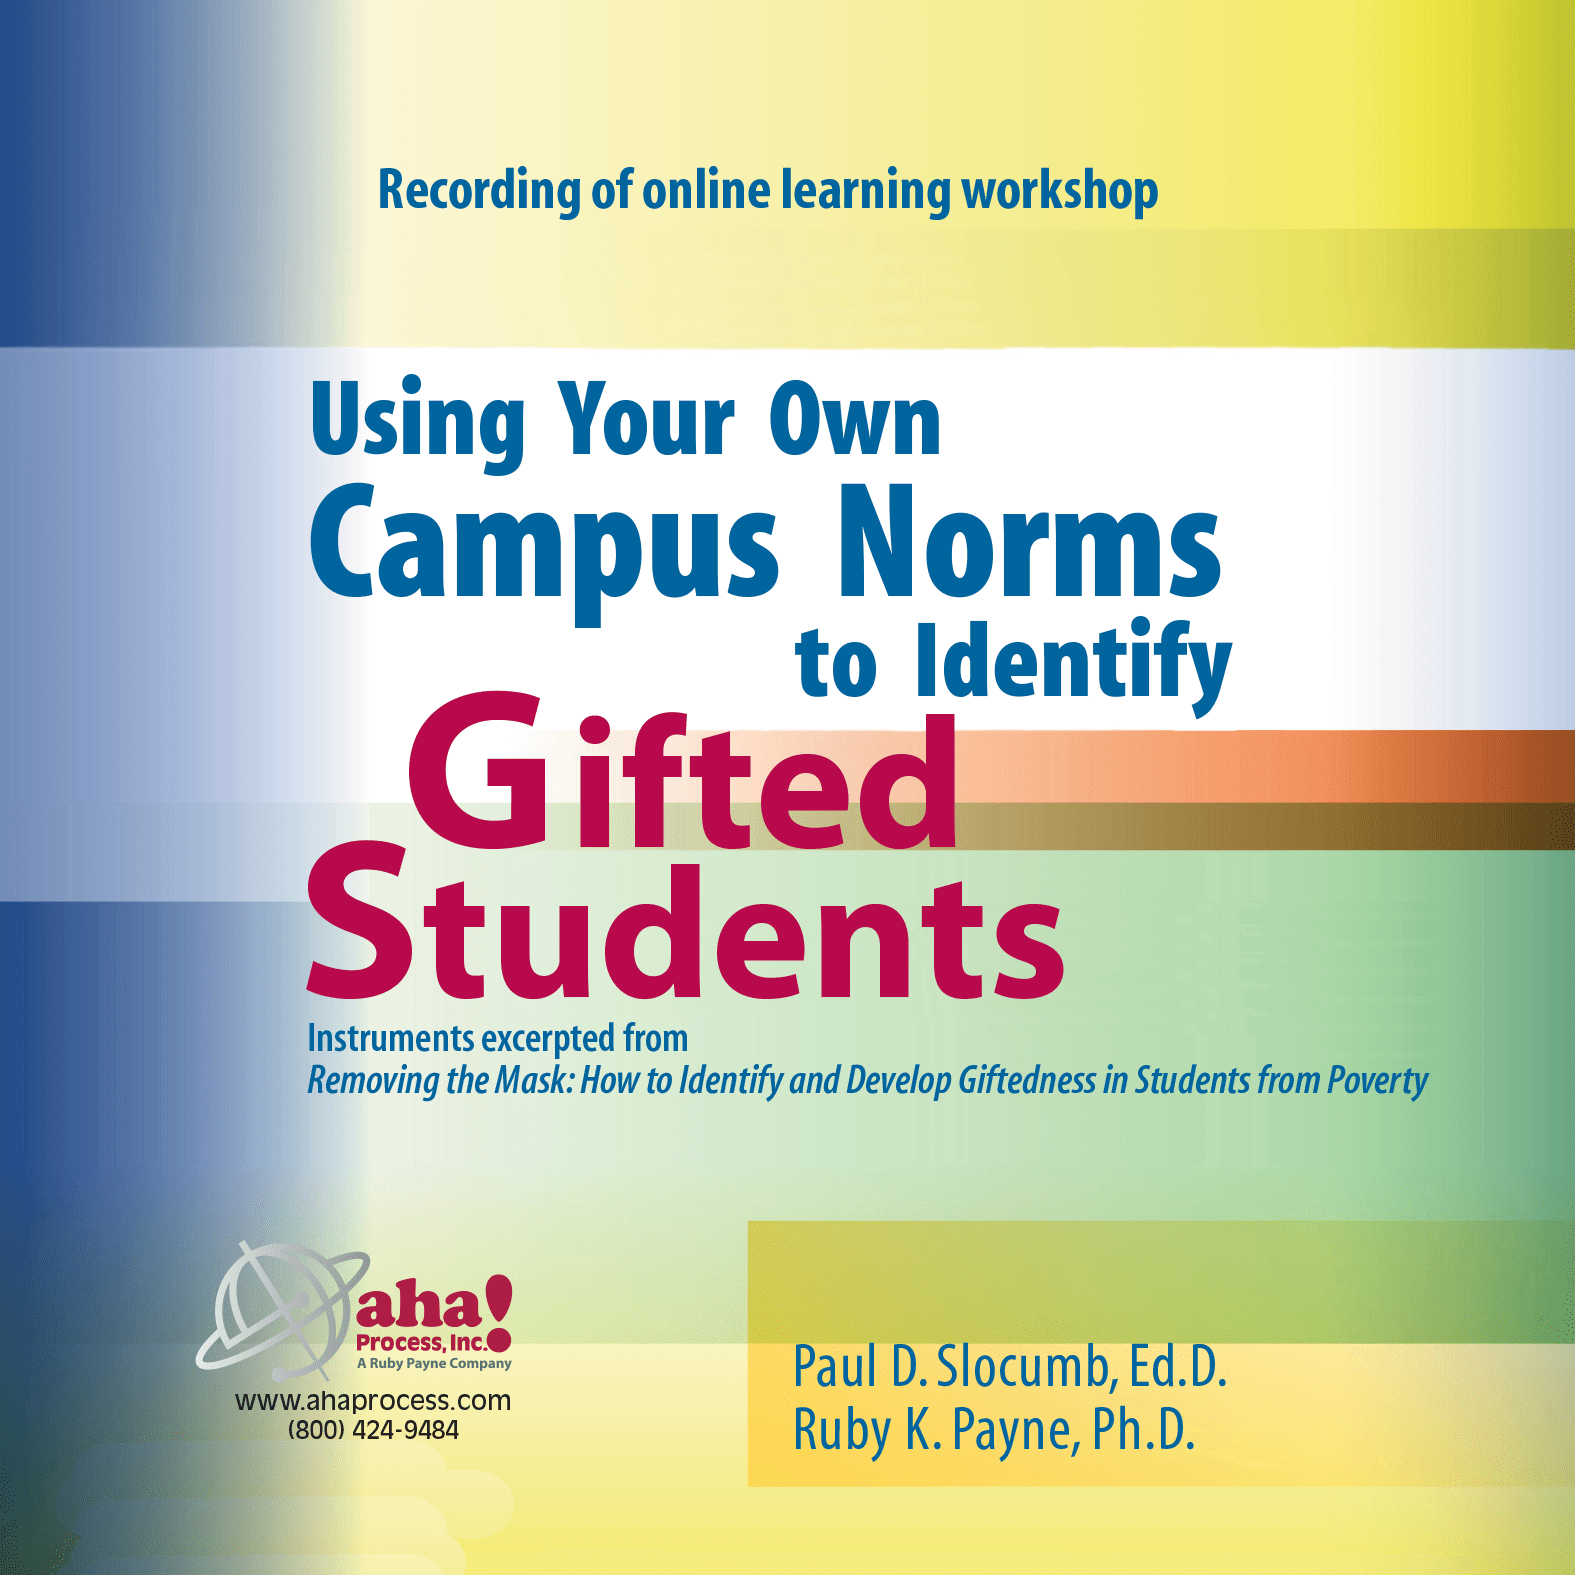 Using Your Own Campus Norms to Identify Gifted Students - USB